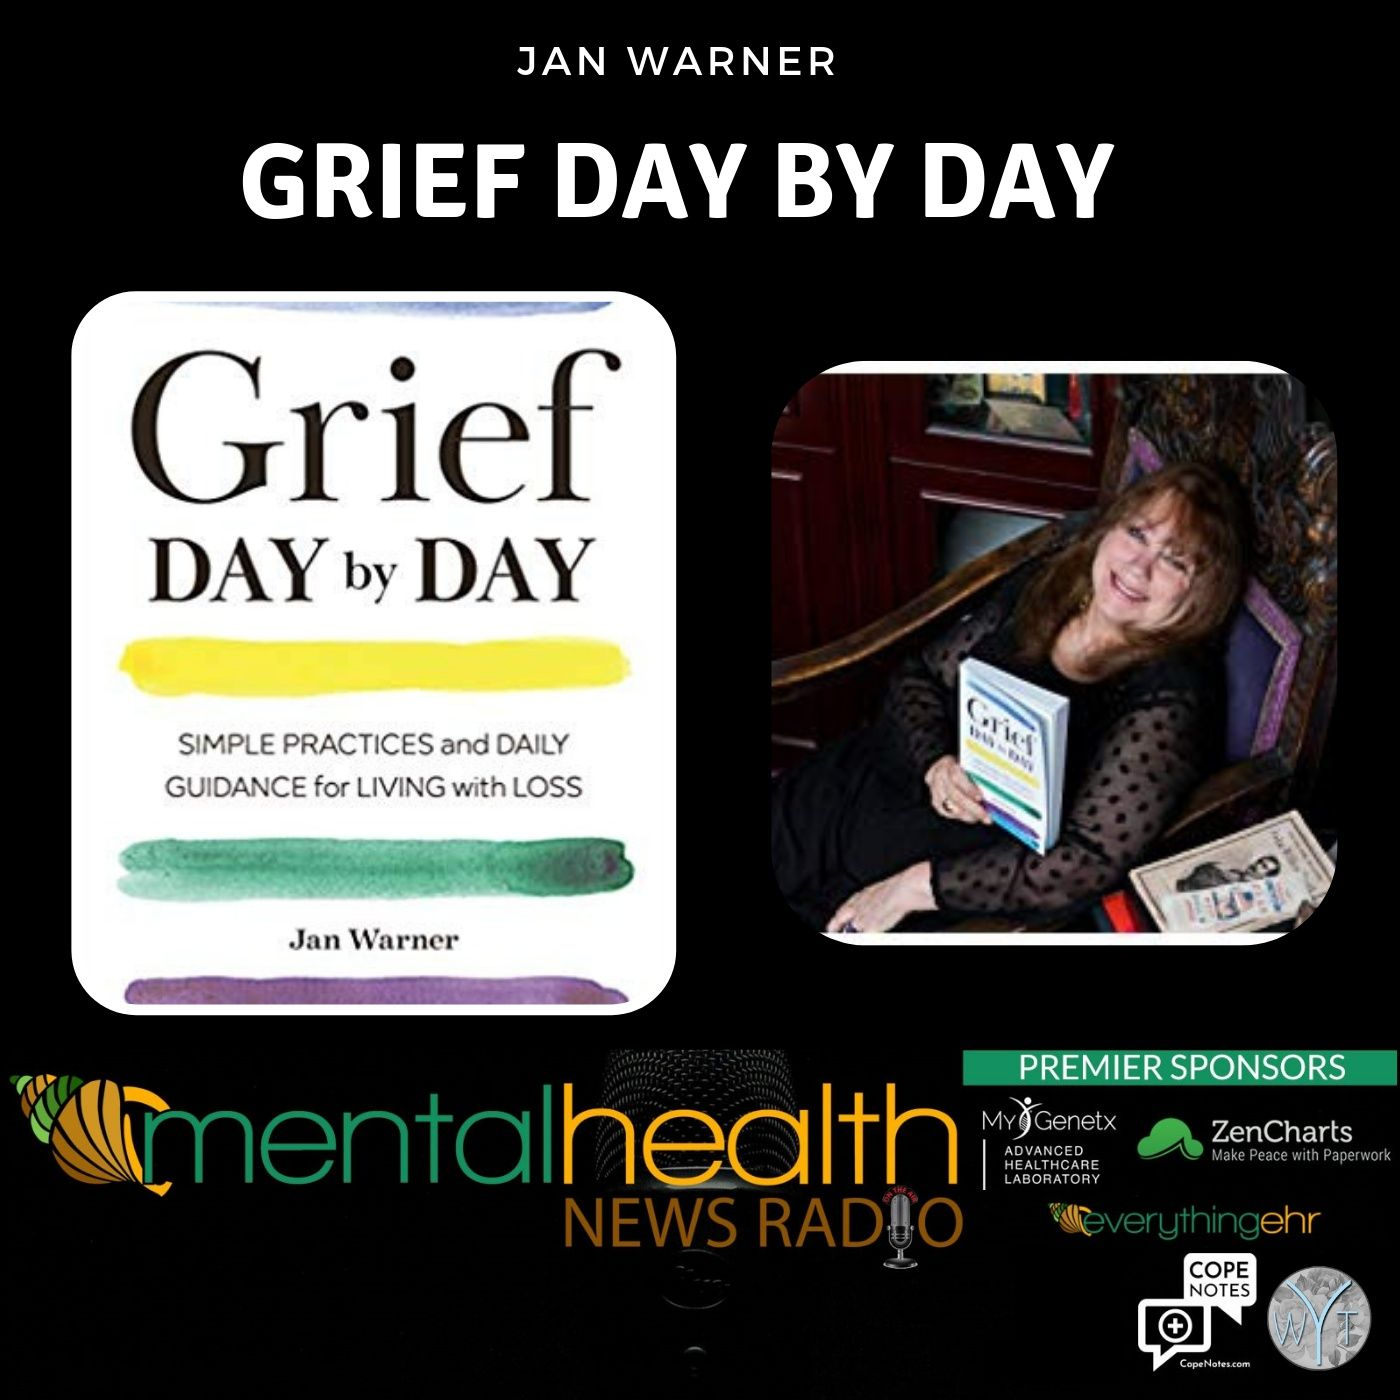 Mental Health News Radio - Grief Day By Day with Jan Warner